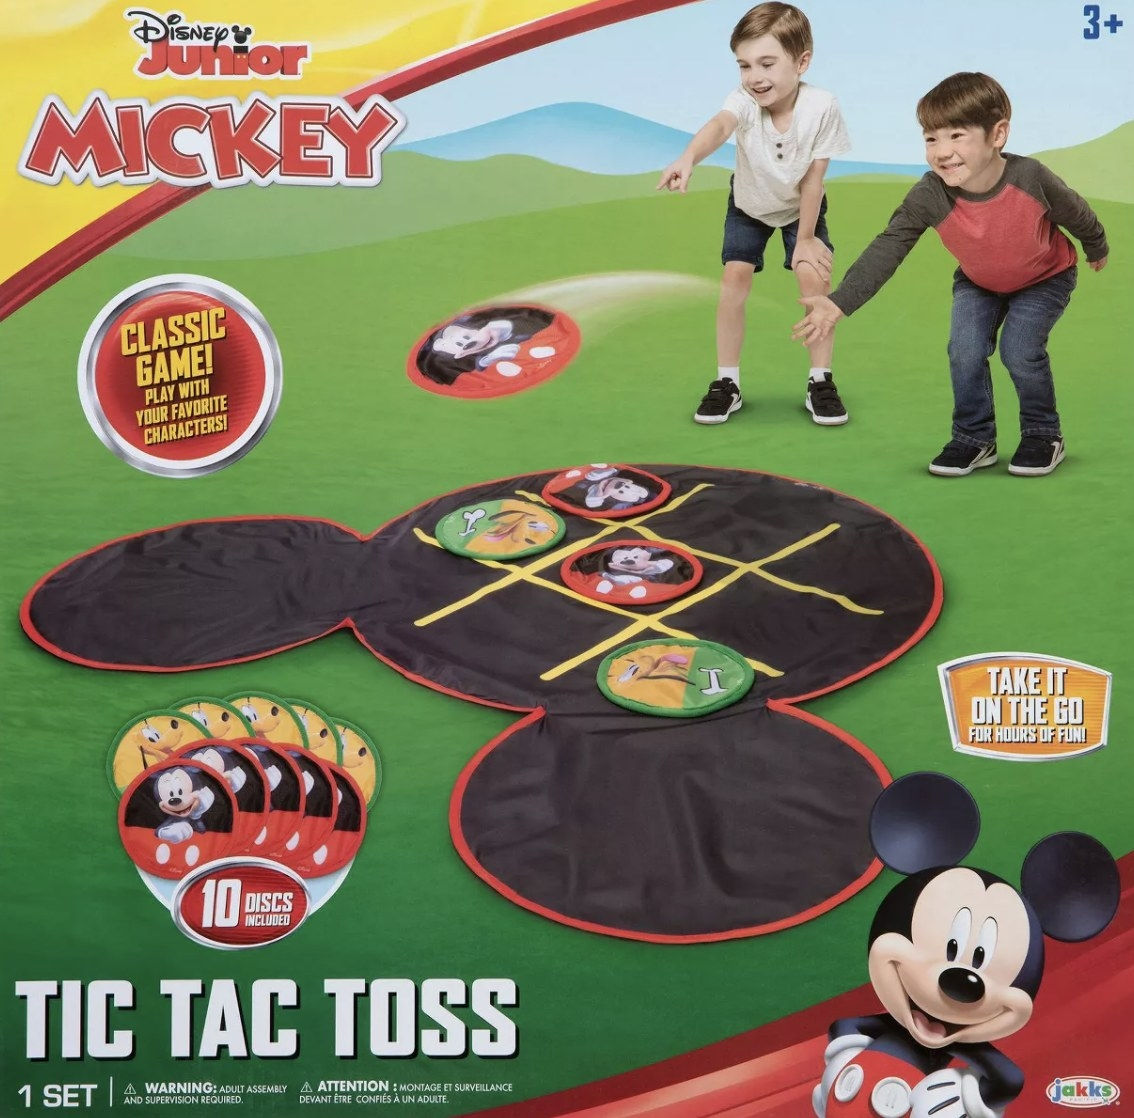 The tic tac toss game